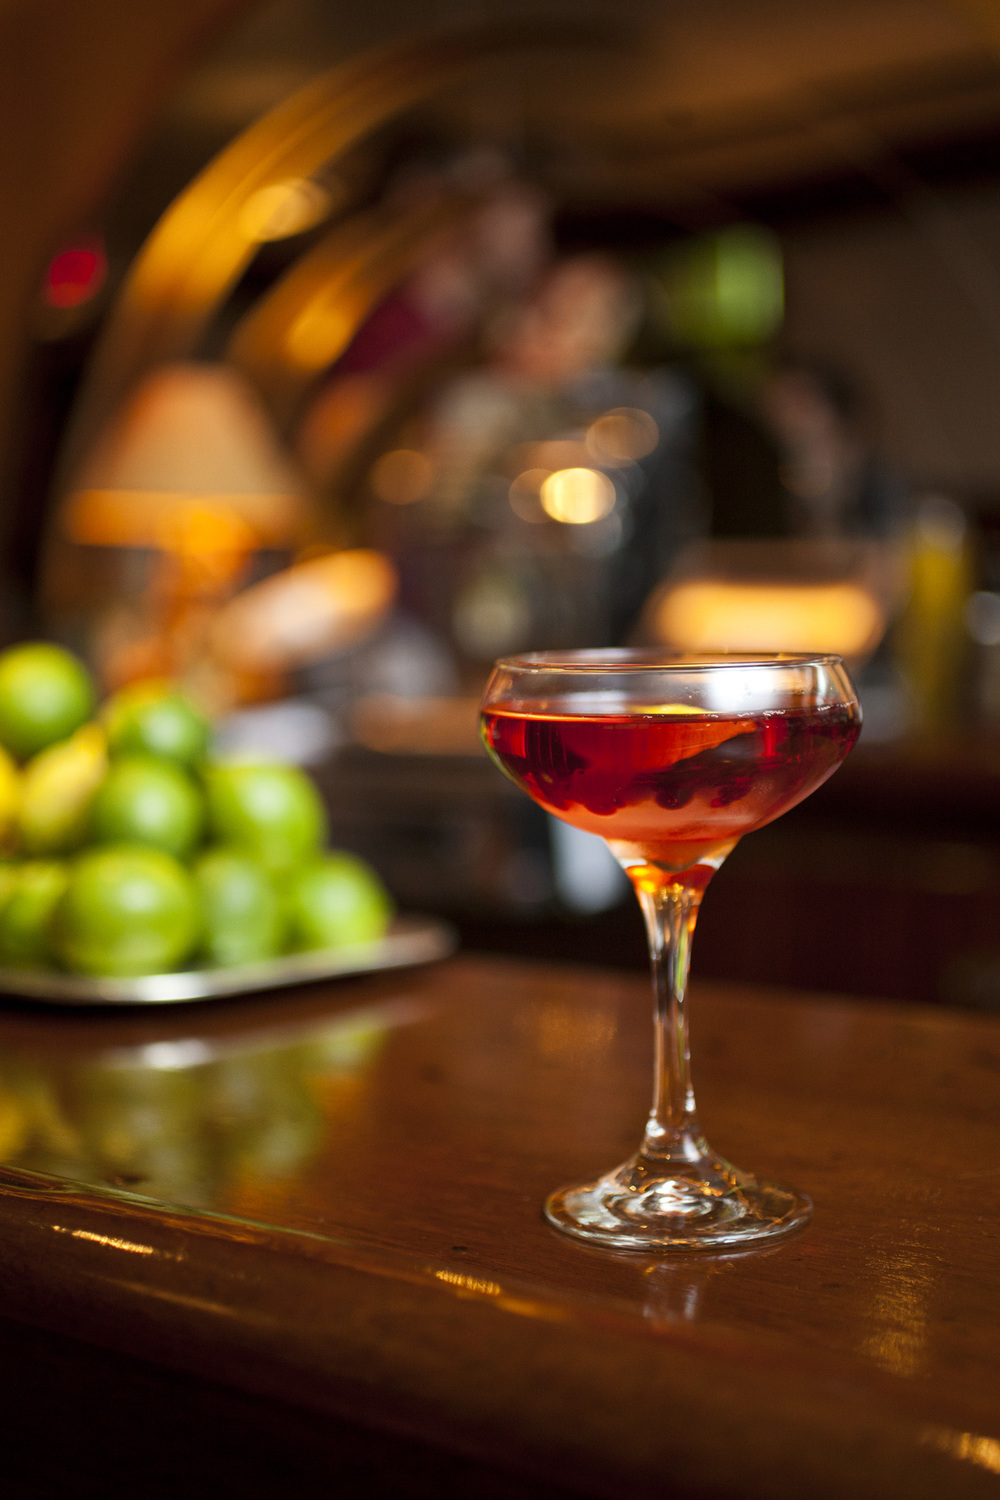 The Boulevardier at Long Island Bar